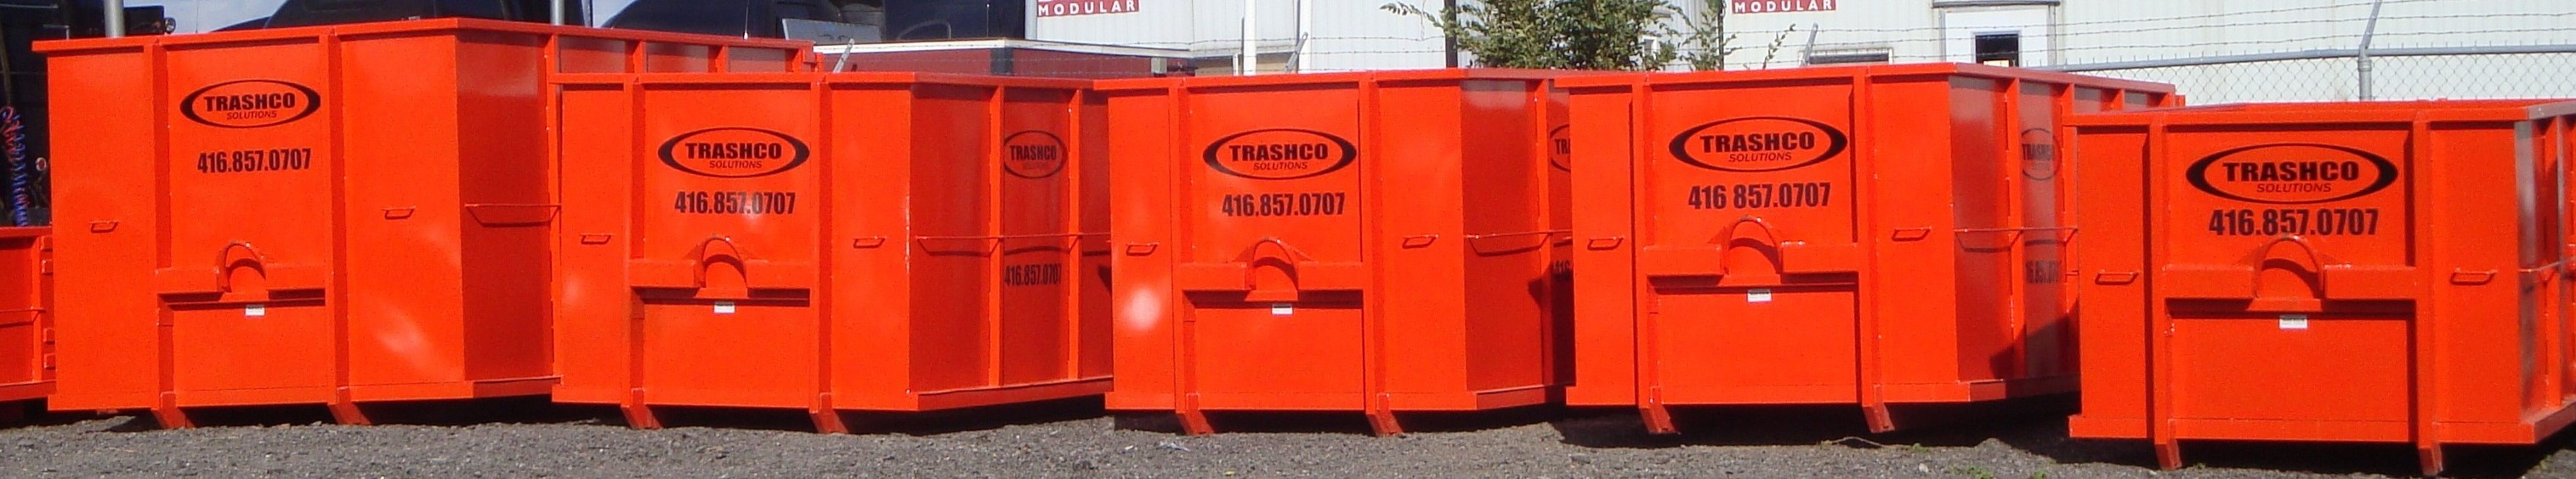 trashco offers different size mini bins